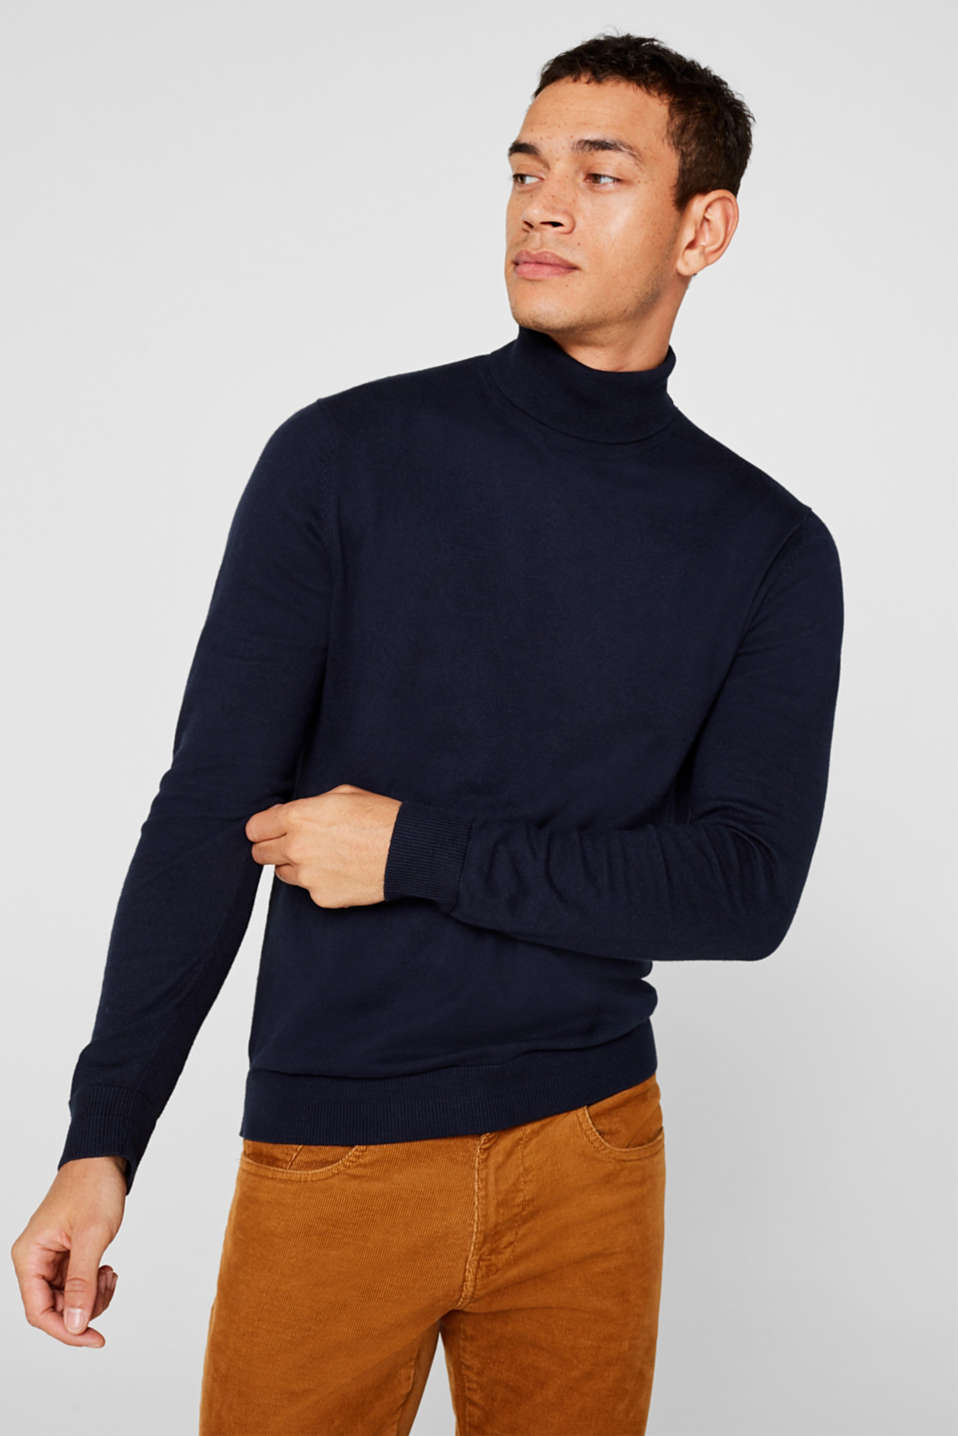 Esprit - With cashmere: fine knit polo neck jumper